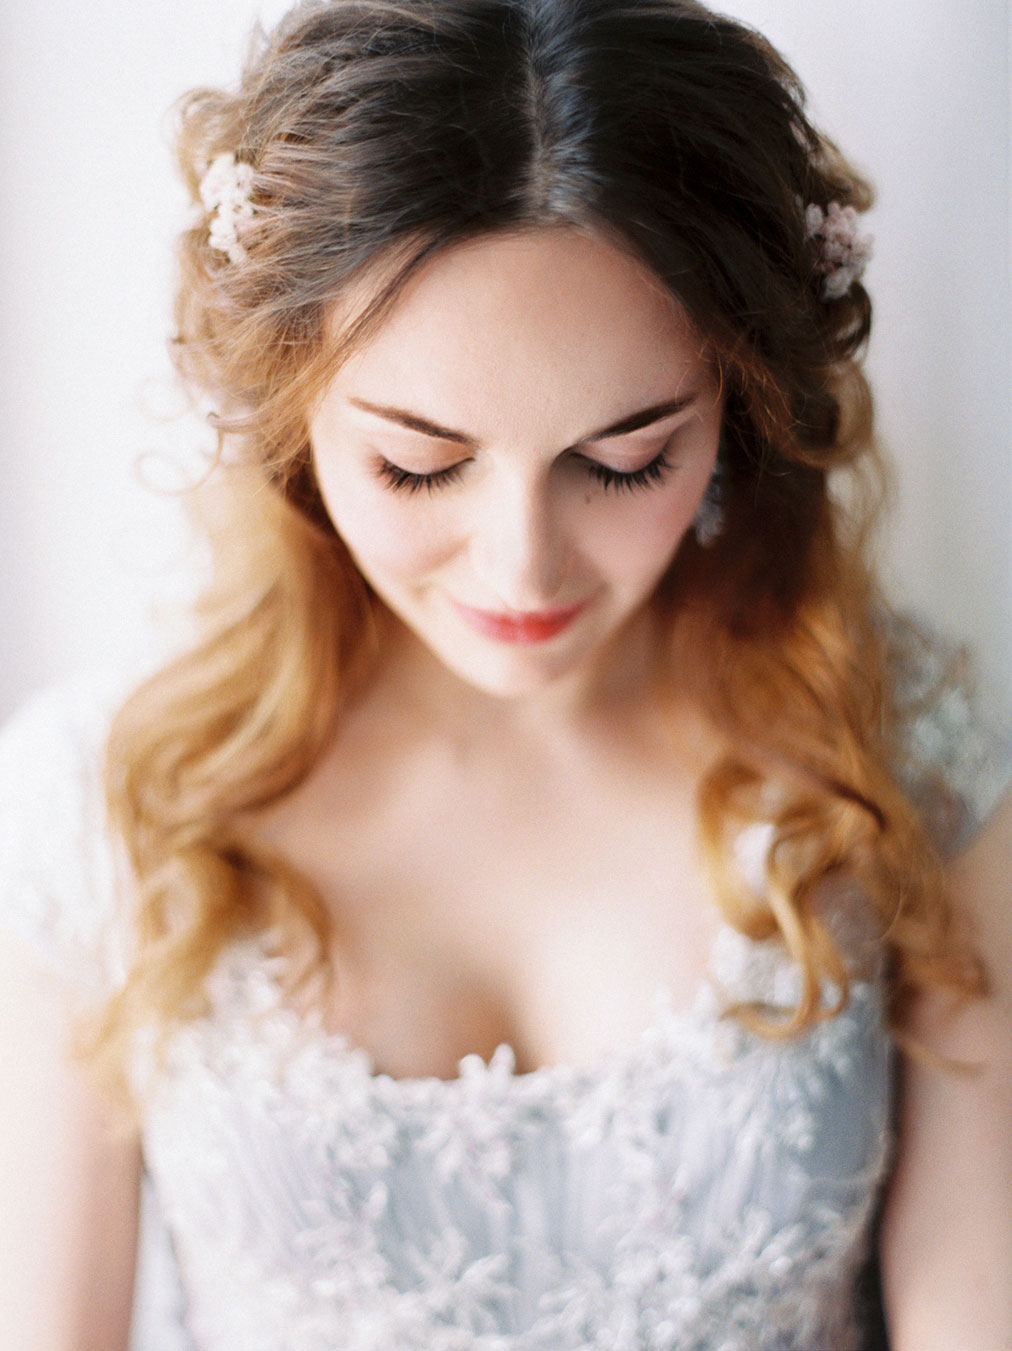 A&K_wed_by_Julia Kaptelova Phototgraphy-017